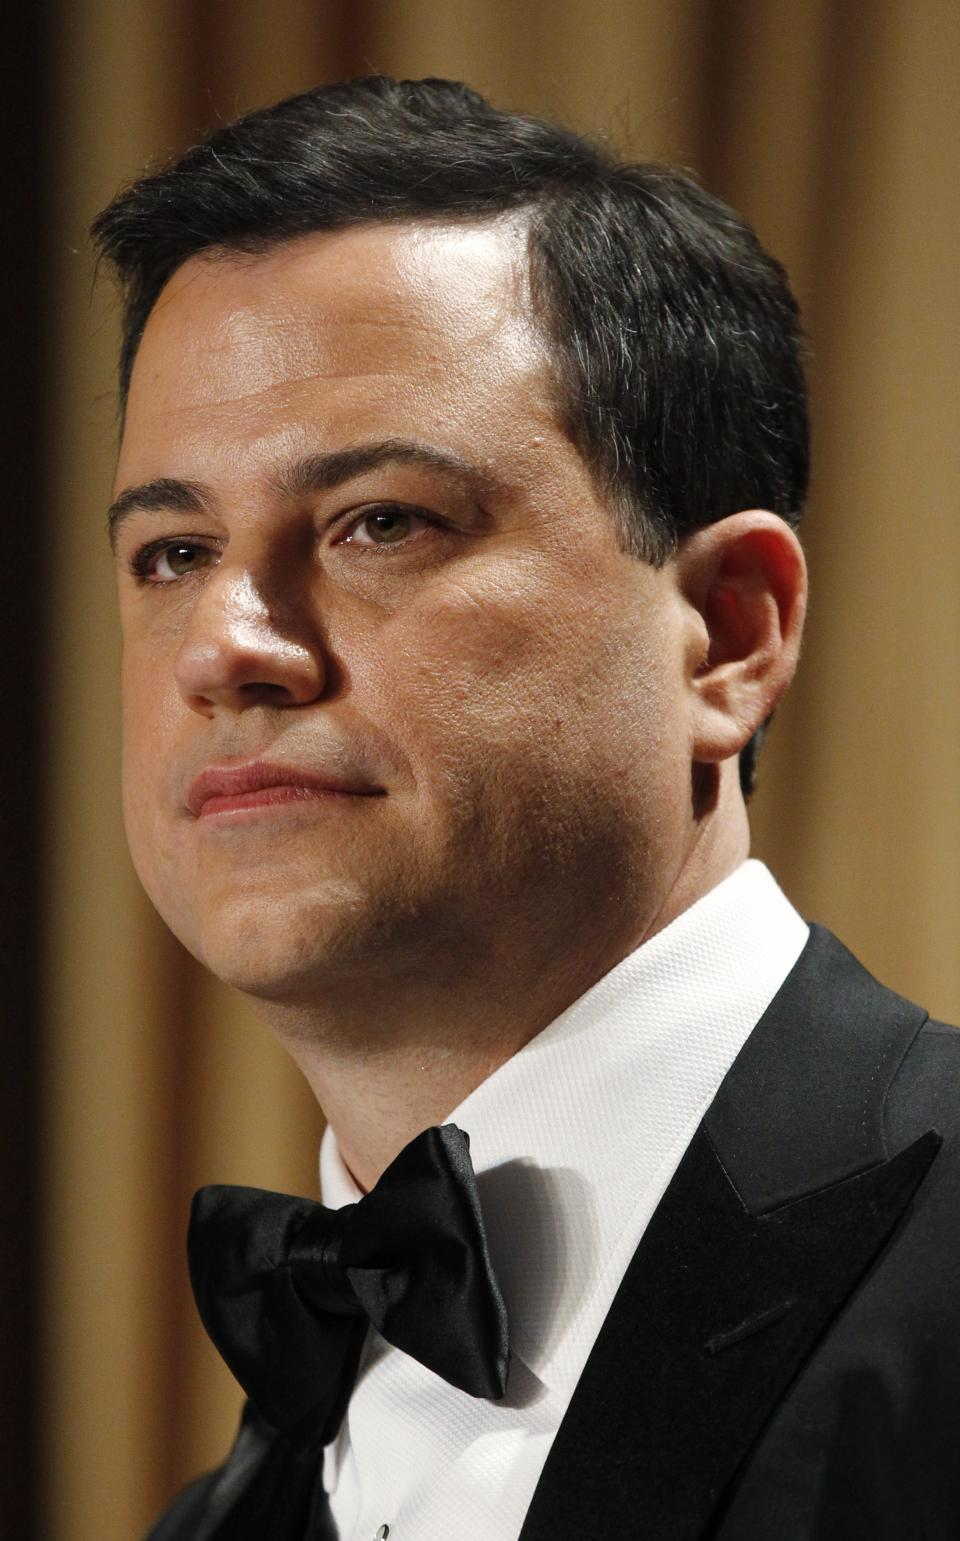 Late-night comic Jimmy Kimmel headlines the White House Correspondents' Association Dinner, Saturday, April 28, 2012 in Washington. (AP Photo/Haraz N. Ghanbari)